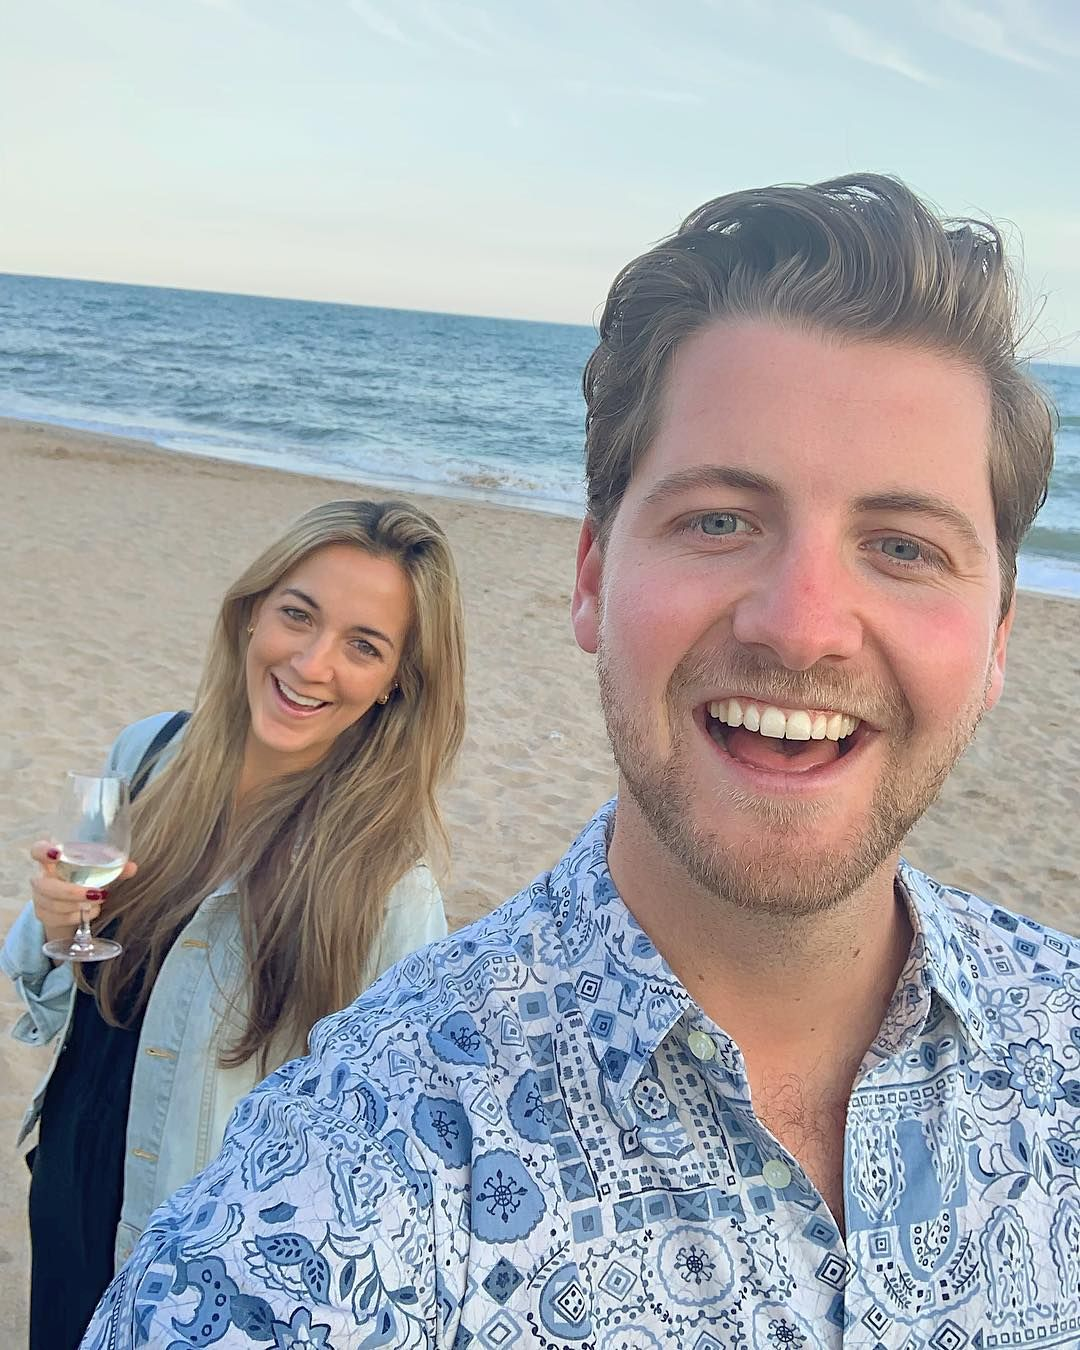 Image may contain: Made in Chelsea cast now, Made in Chelsea, cast, then, now, before, after, iconic, original, Stevie, girlfriend, 2019, People, Photo, Photography, Portrait, Man, Apparel, Clothing, Beach, Coast, Shoreline, Outdoors, Sea, Ocean, Nature, Water, Face, Human, Person